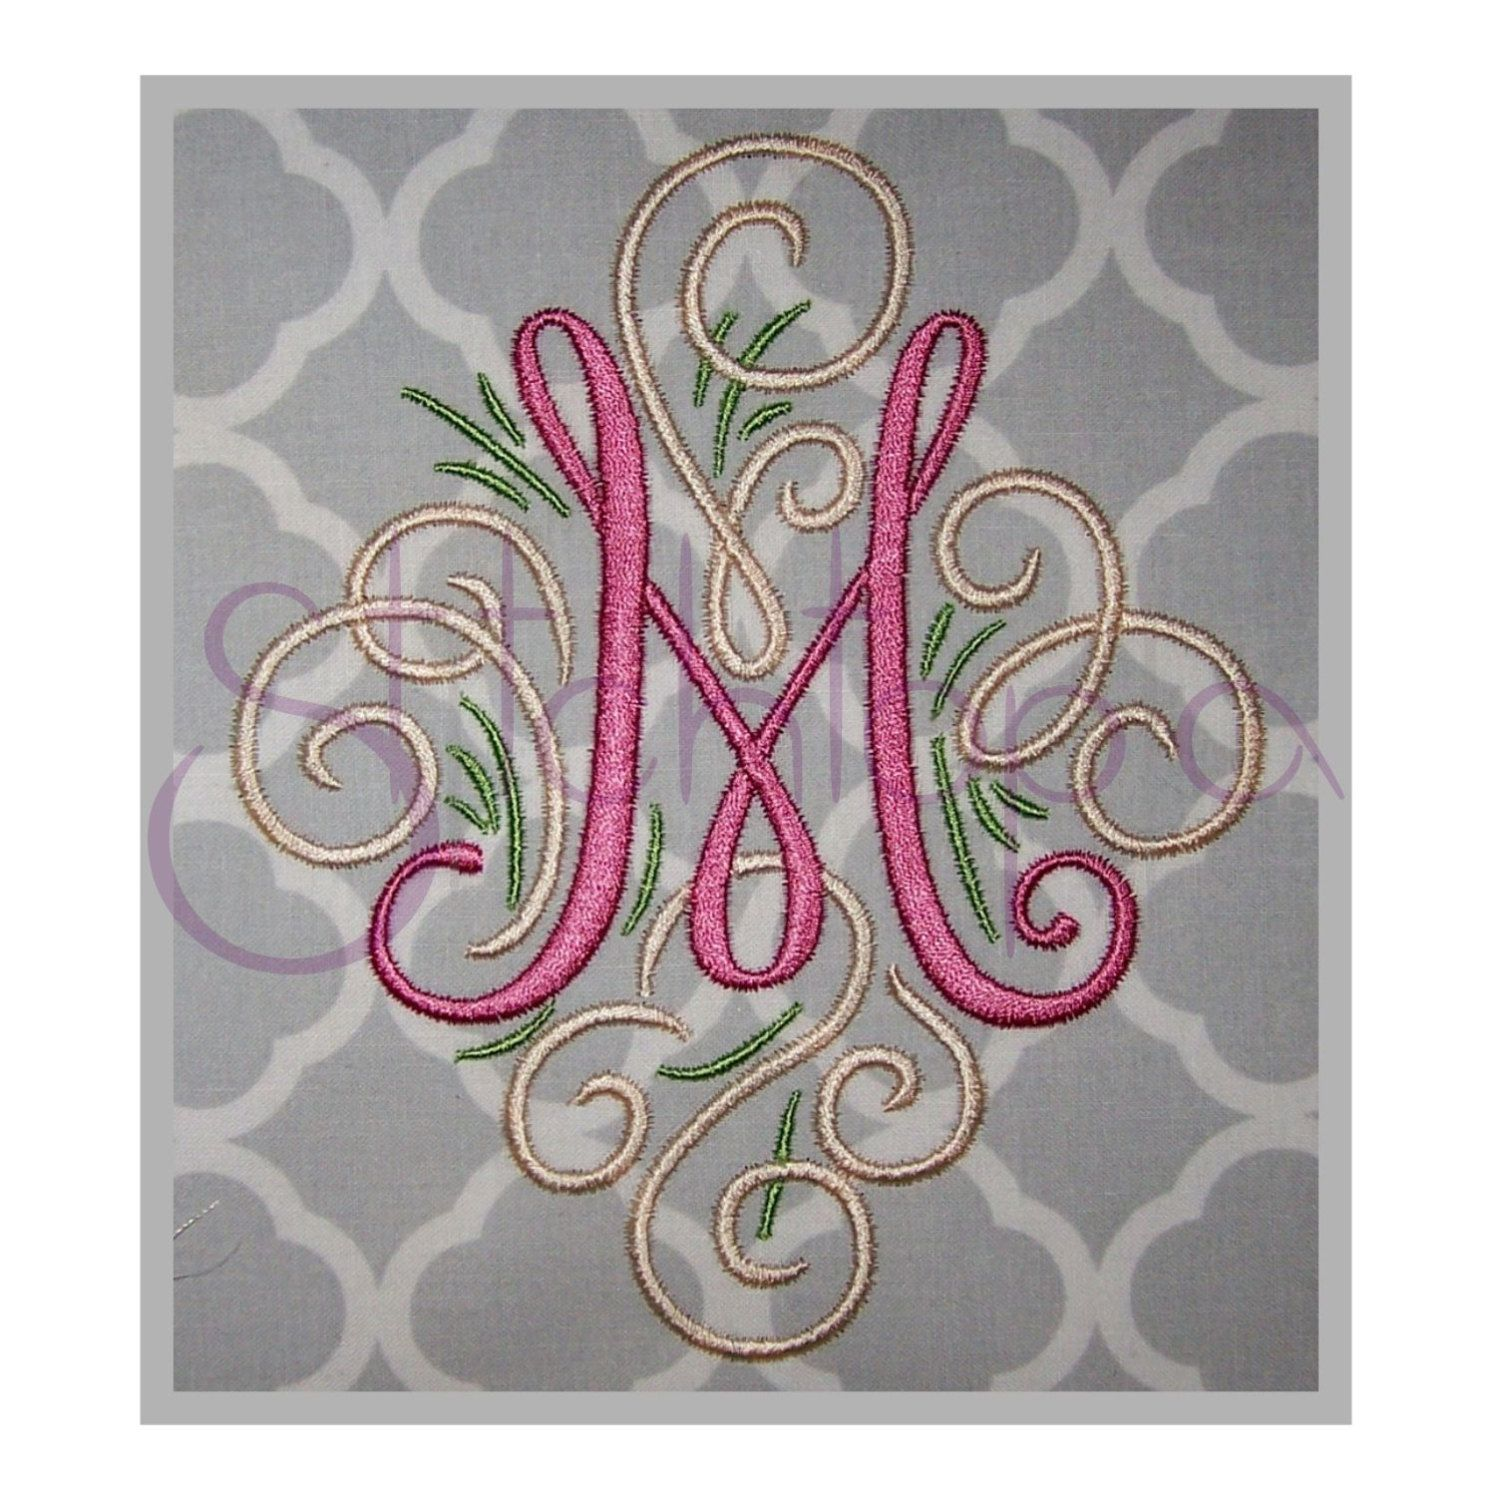 Adorn Monogram Set – 3″, 4″ by StitchtopiaInc on Etsy https://www.etsy.com/listing/241838200/adorn-monogram-set-3-4